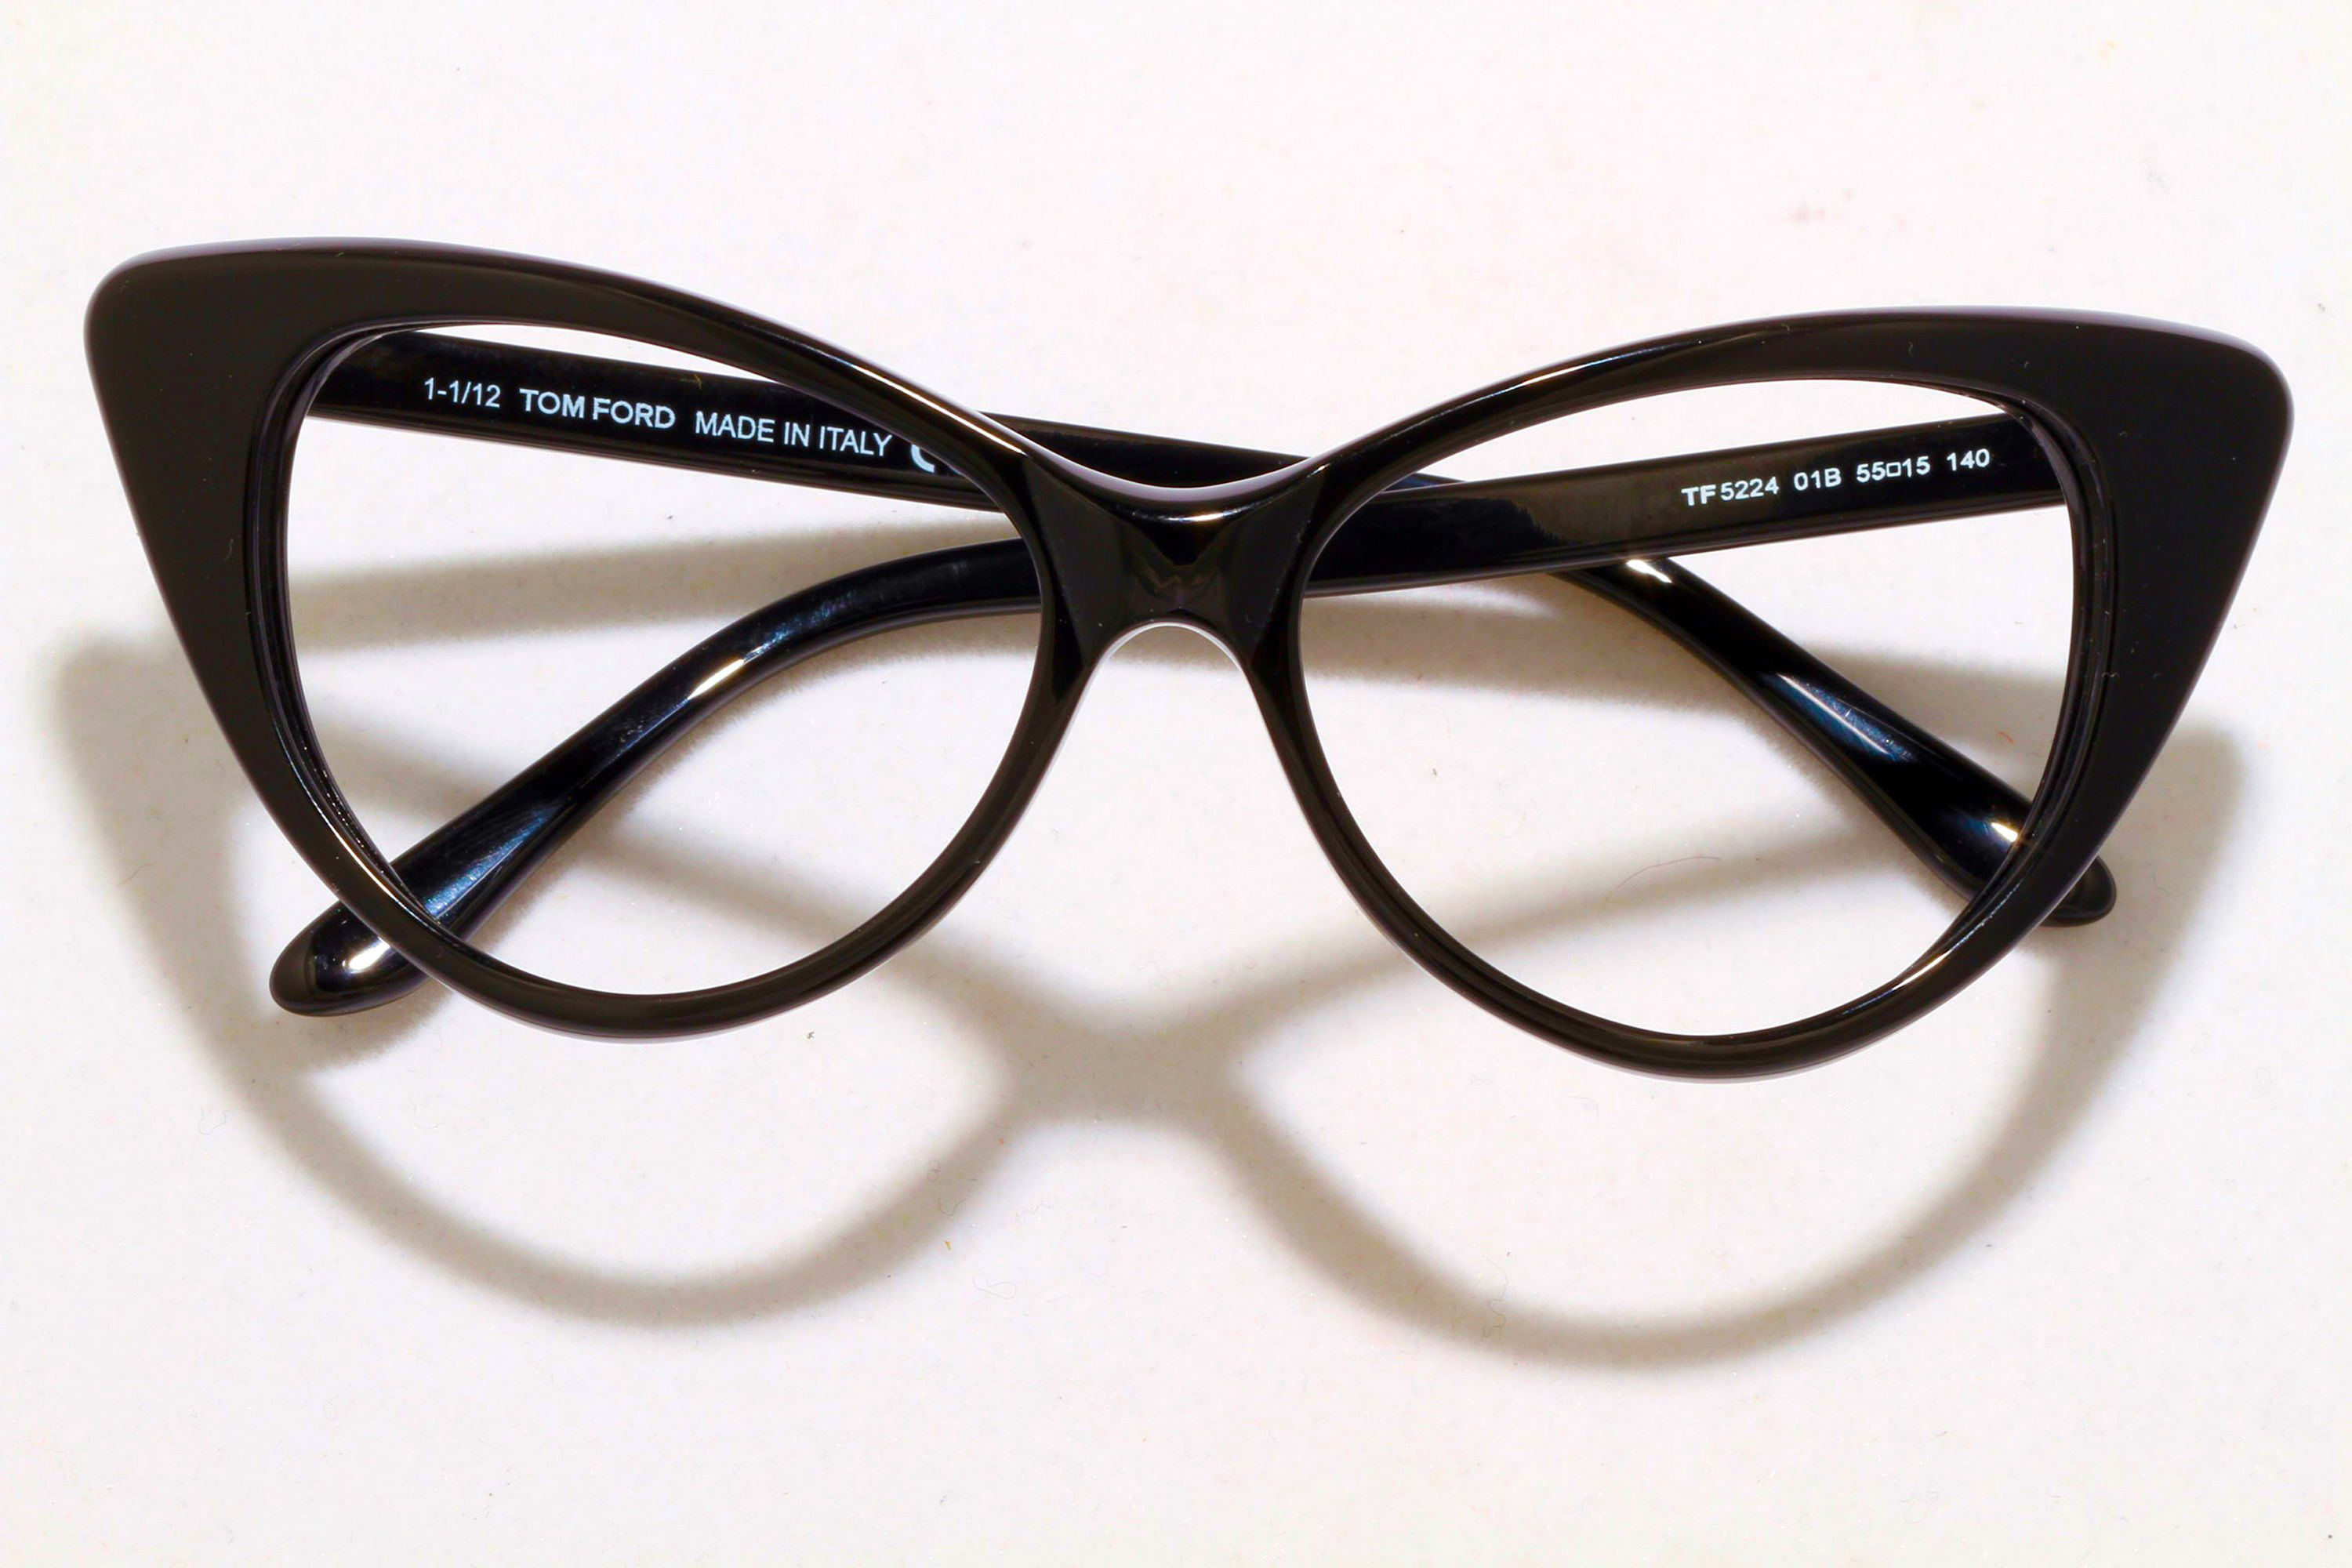 Tom Ford vintage eyeglasses glasses Pinterest